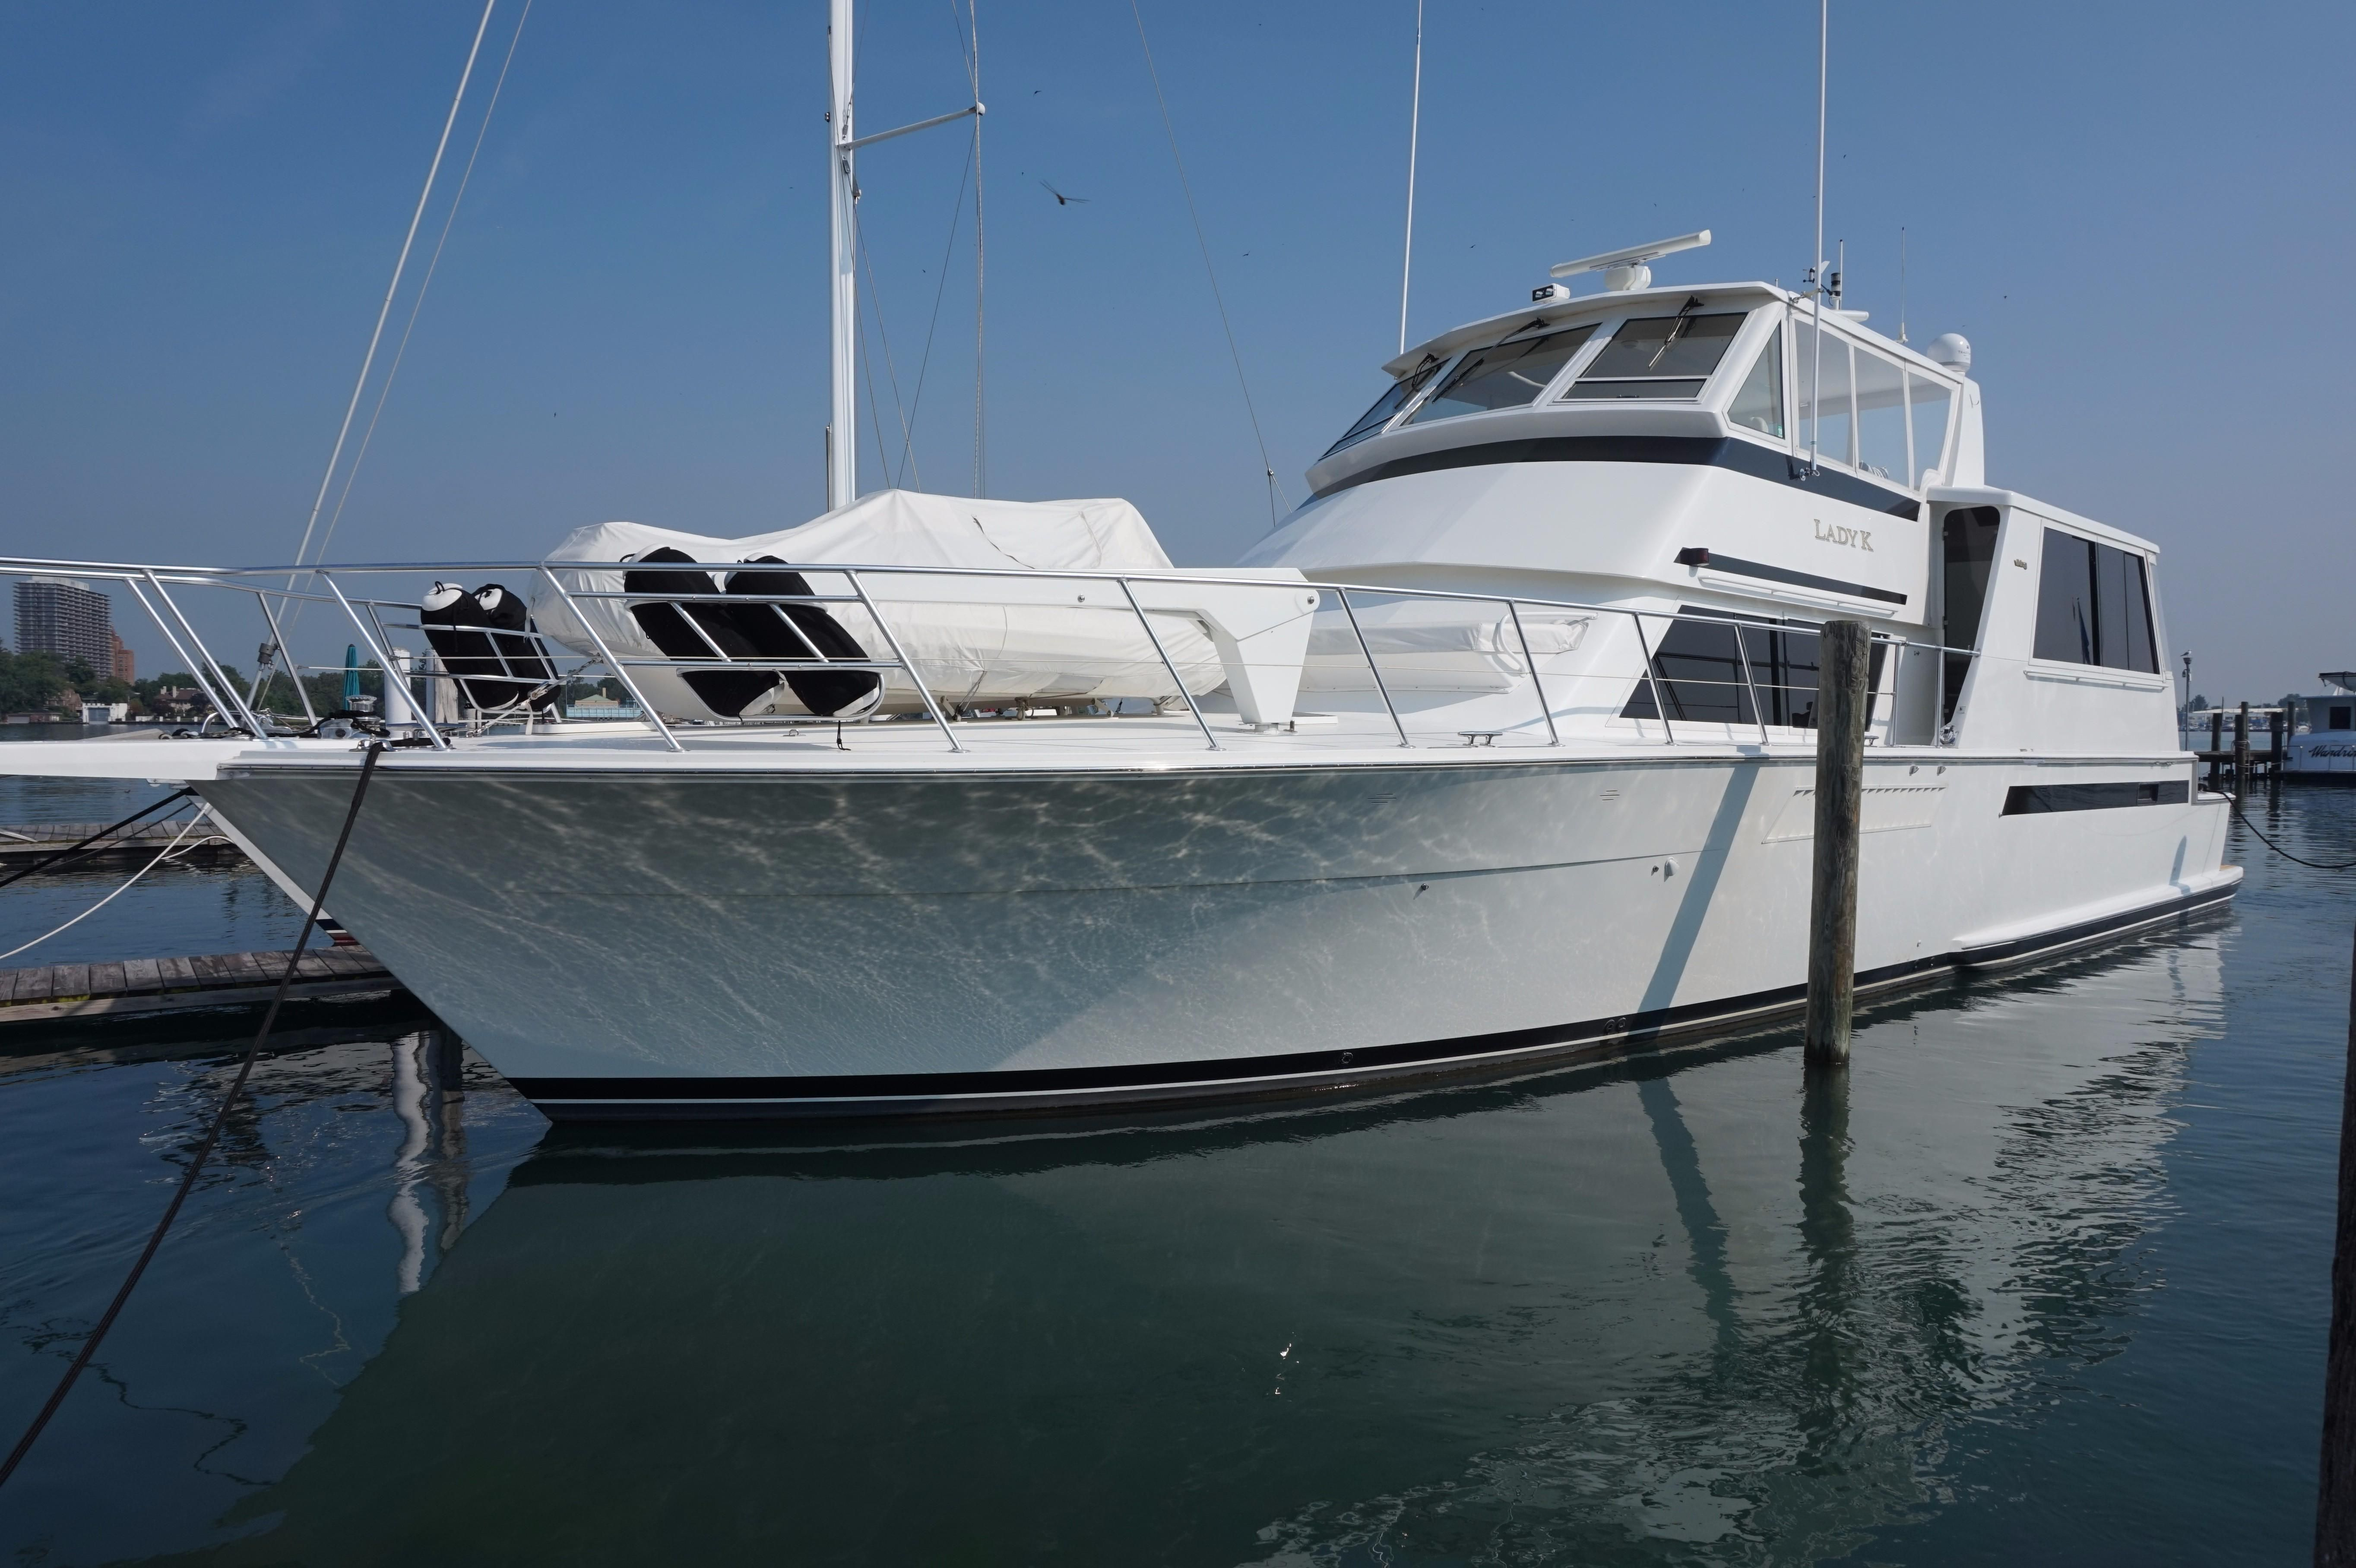 1997 viking 60 cockpit sports yacht power boat for sale for 60 viking motor yacht for sale